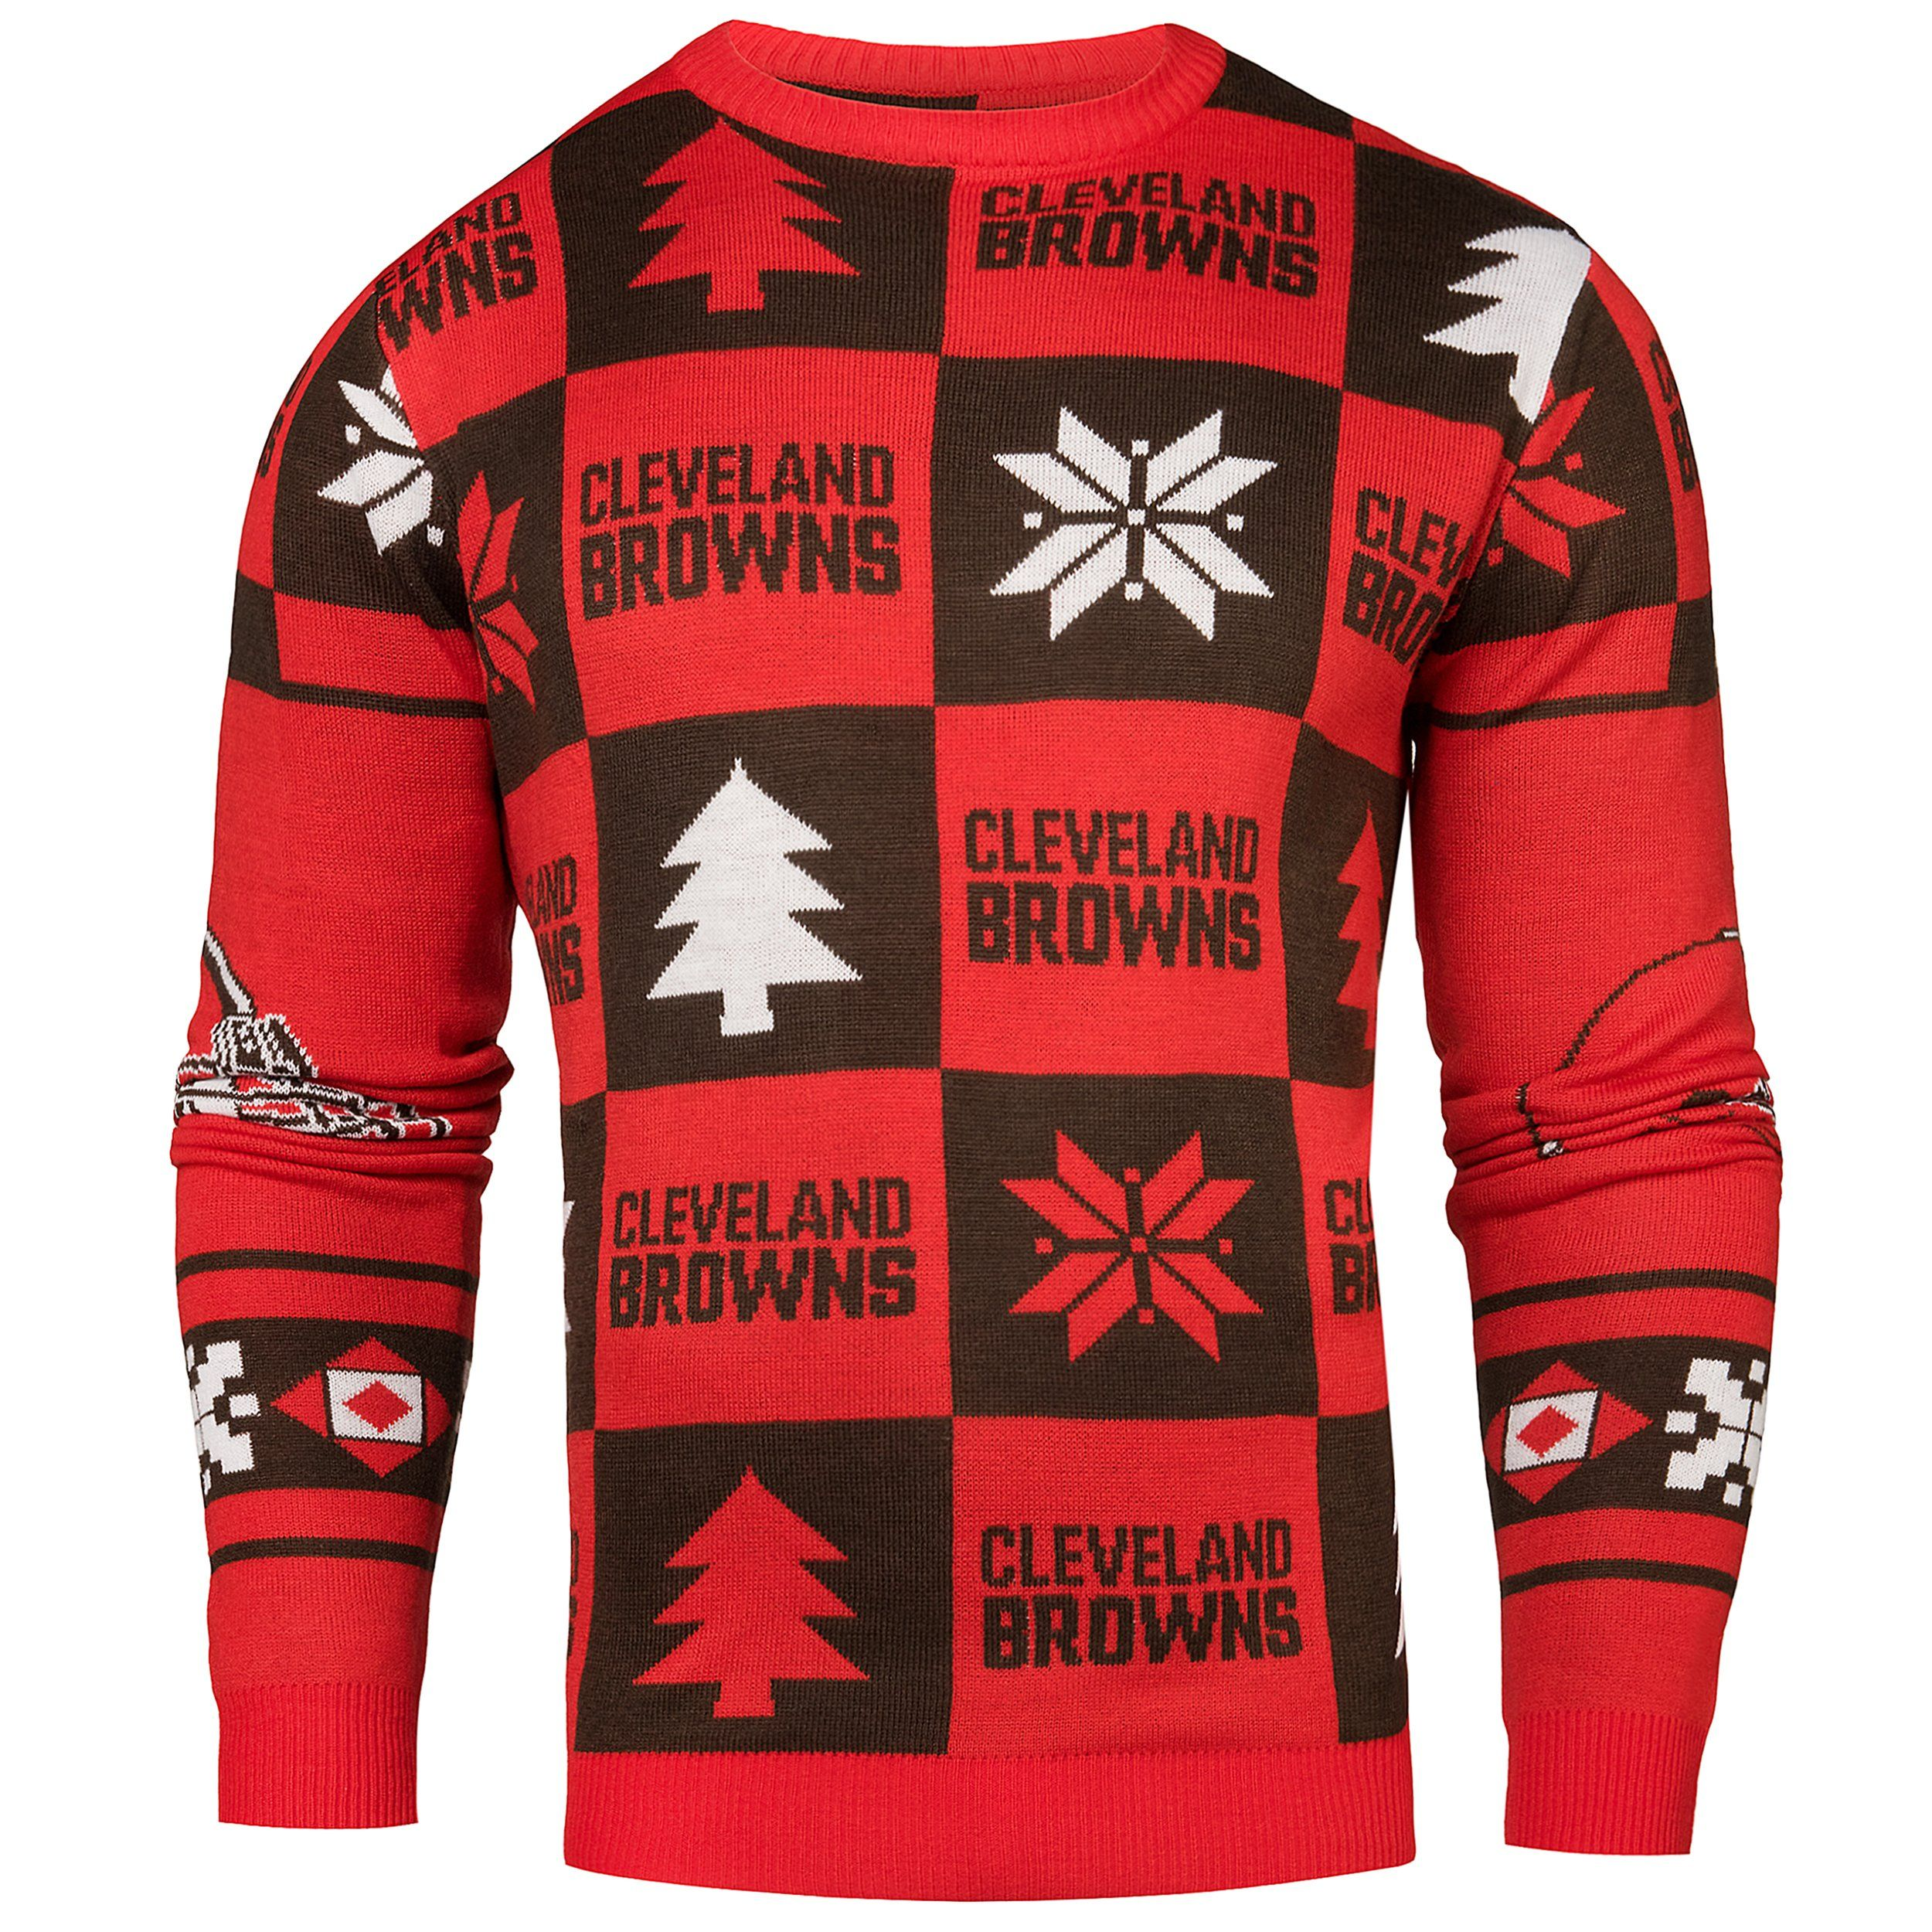 Cleveland Browns Christmas Sweater.Cleveland Browns Nfl Fc Burnt Orange Brown Knit Patches